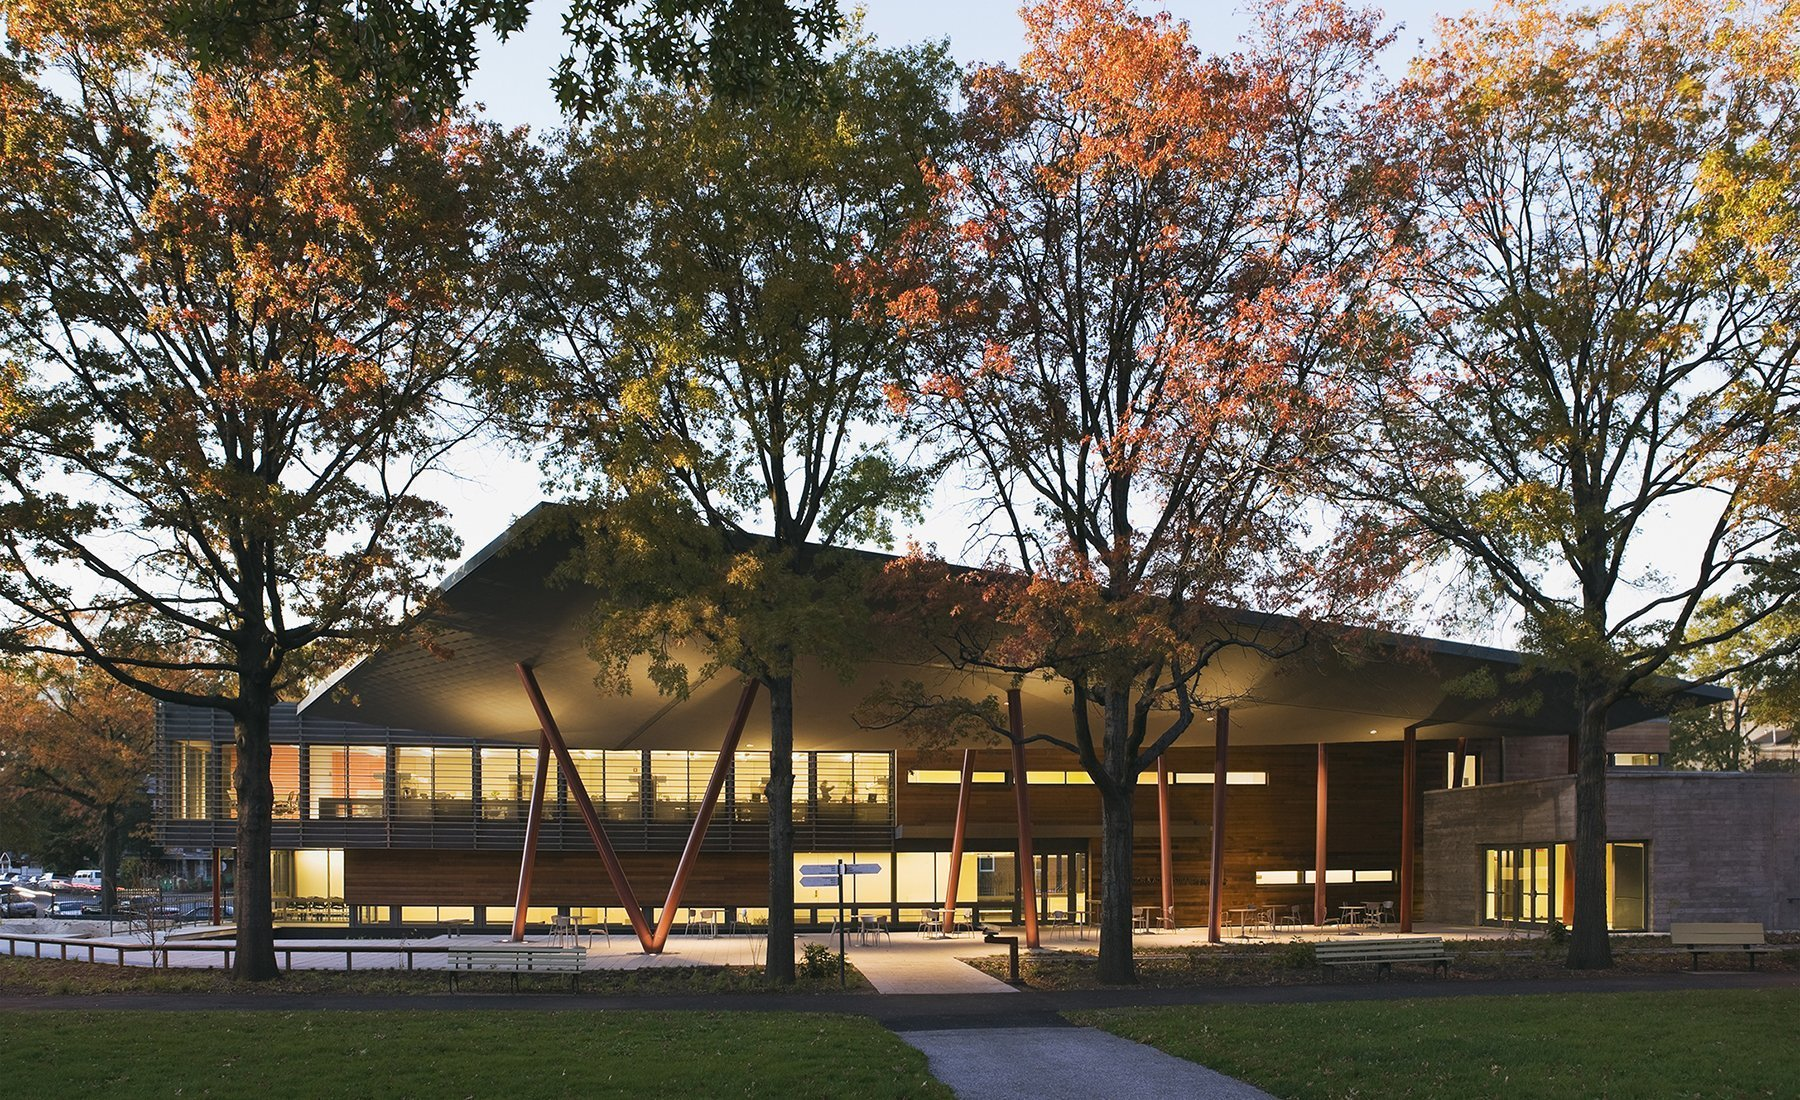 To Book Your Next Meeting At QBG Or For More Information, Contact  Events@queensbotanical.org Or 718.886.3800 Ext. 201.